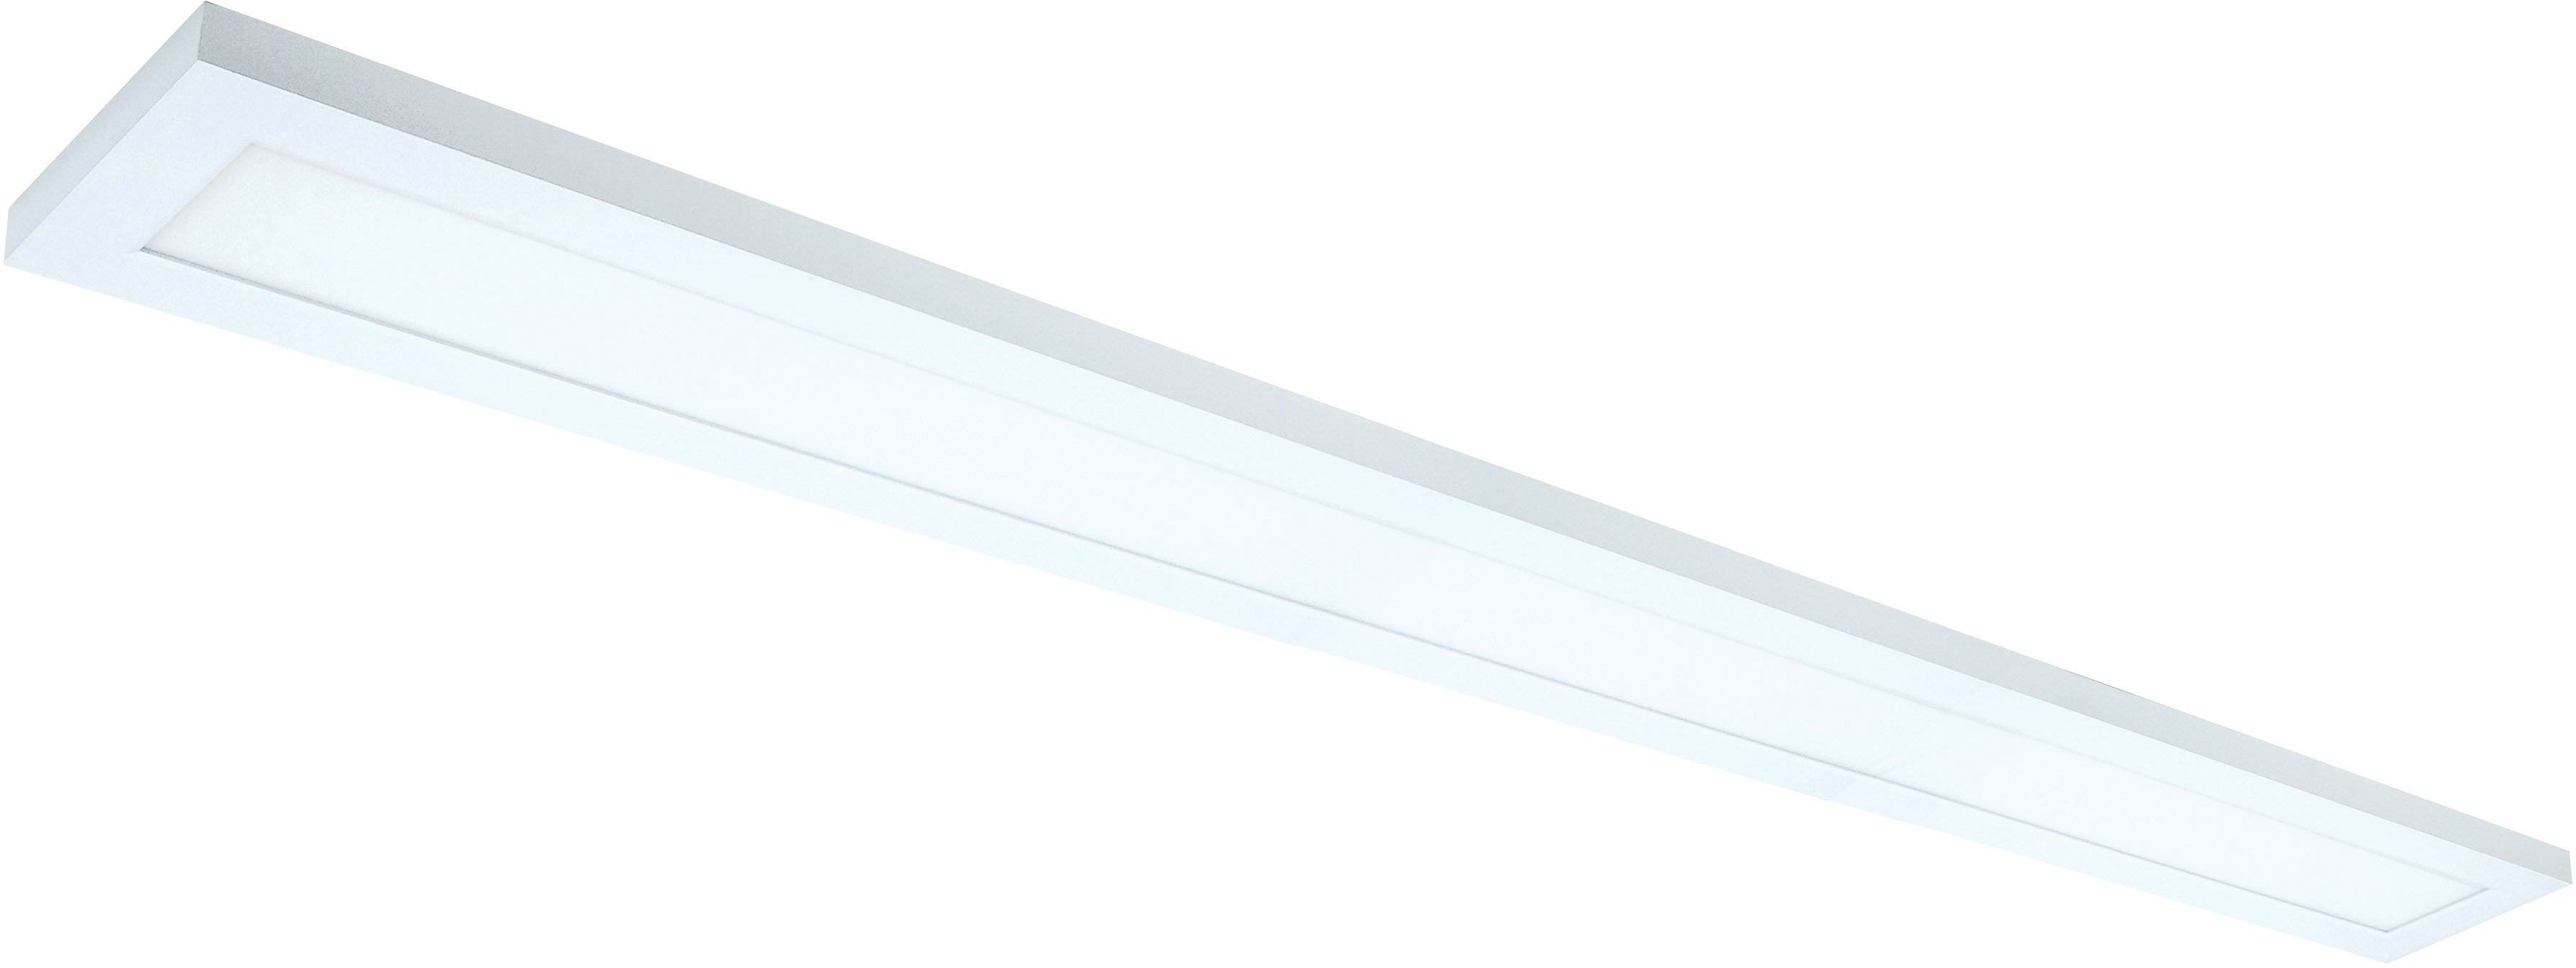 Nuvo 30w Blink Plus 5 x 36 Surface Mount LED 120-277v in White Finish 4000k